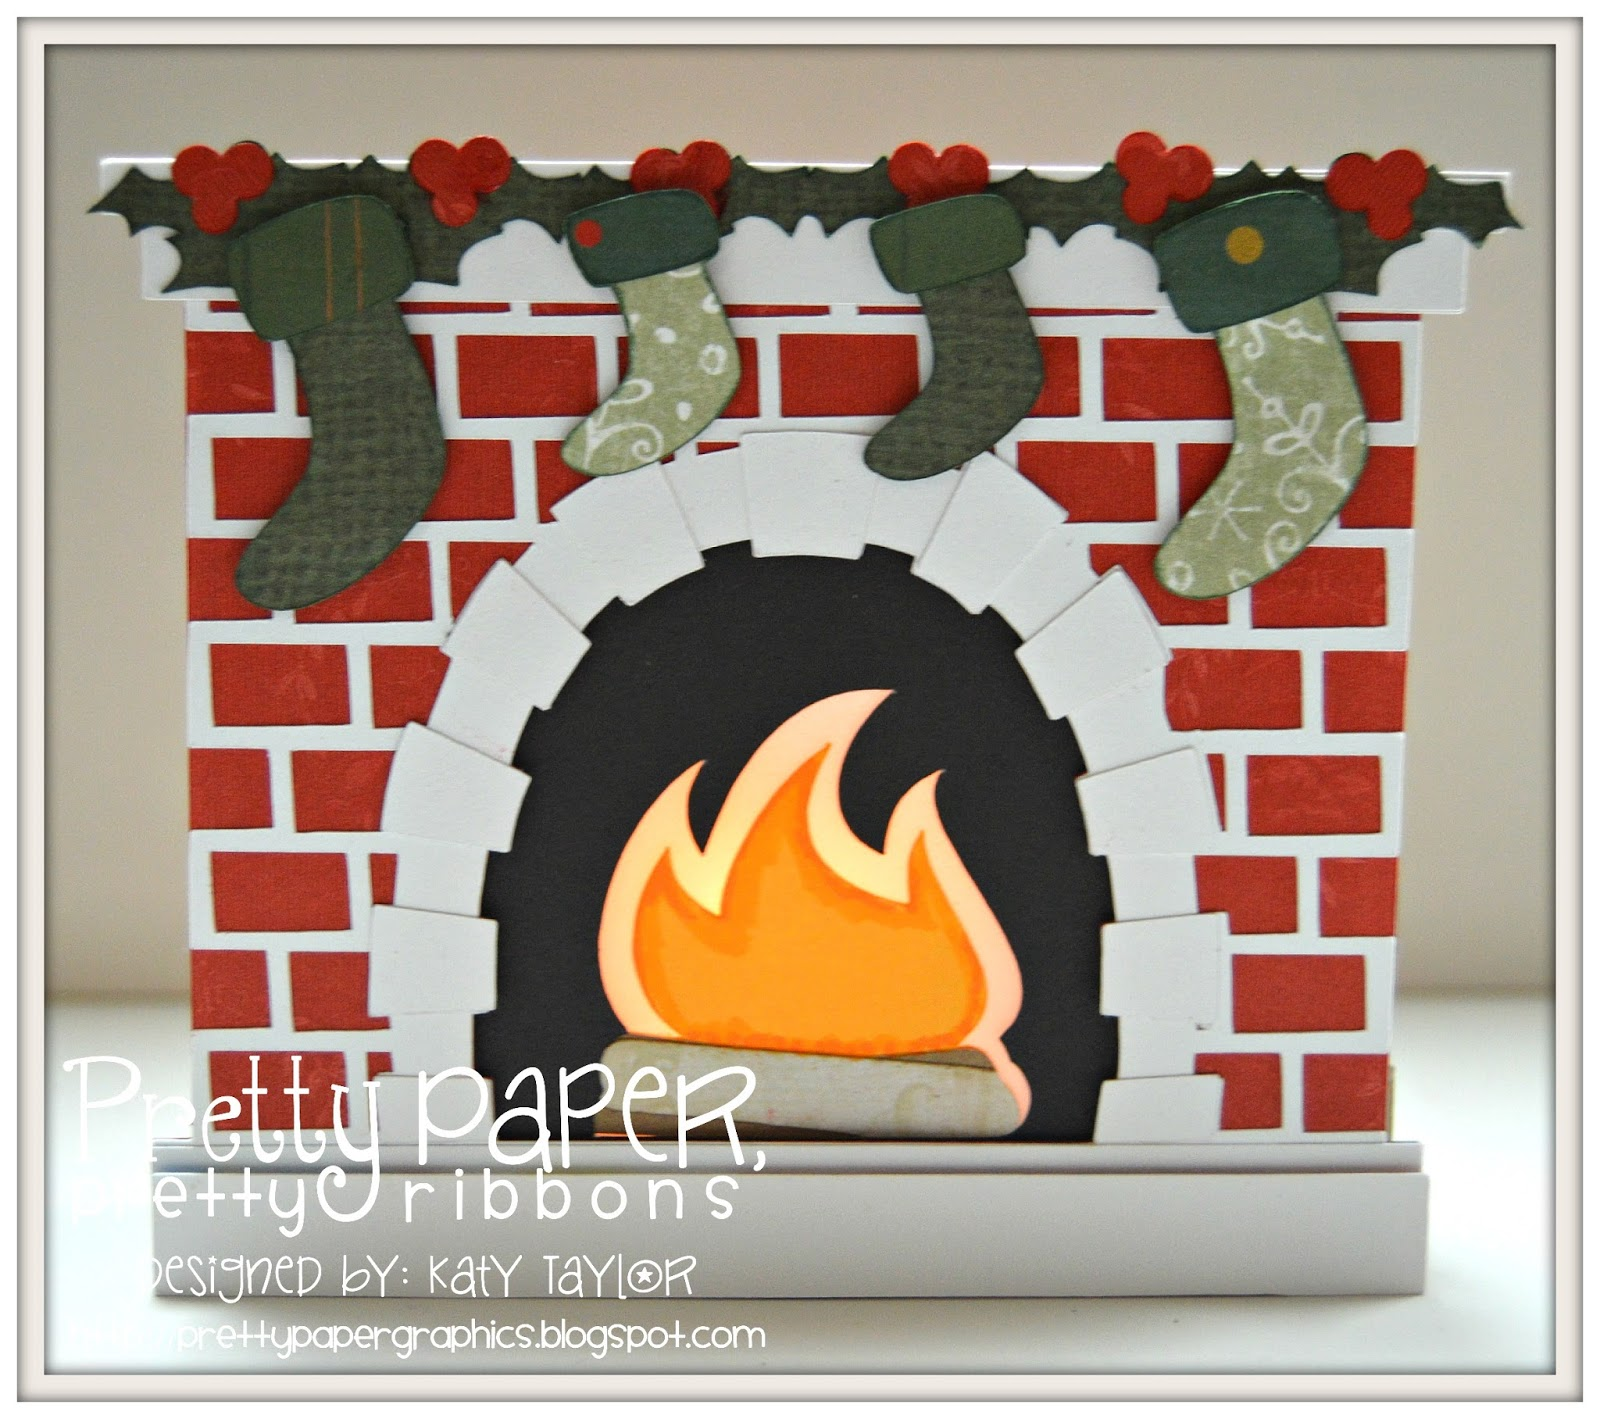 pretty paper pretty ribbons shadow box fireplace card